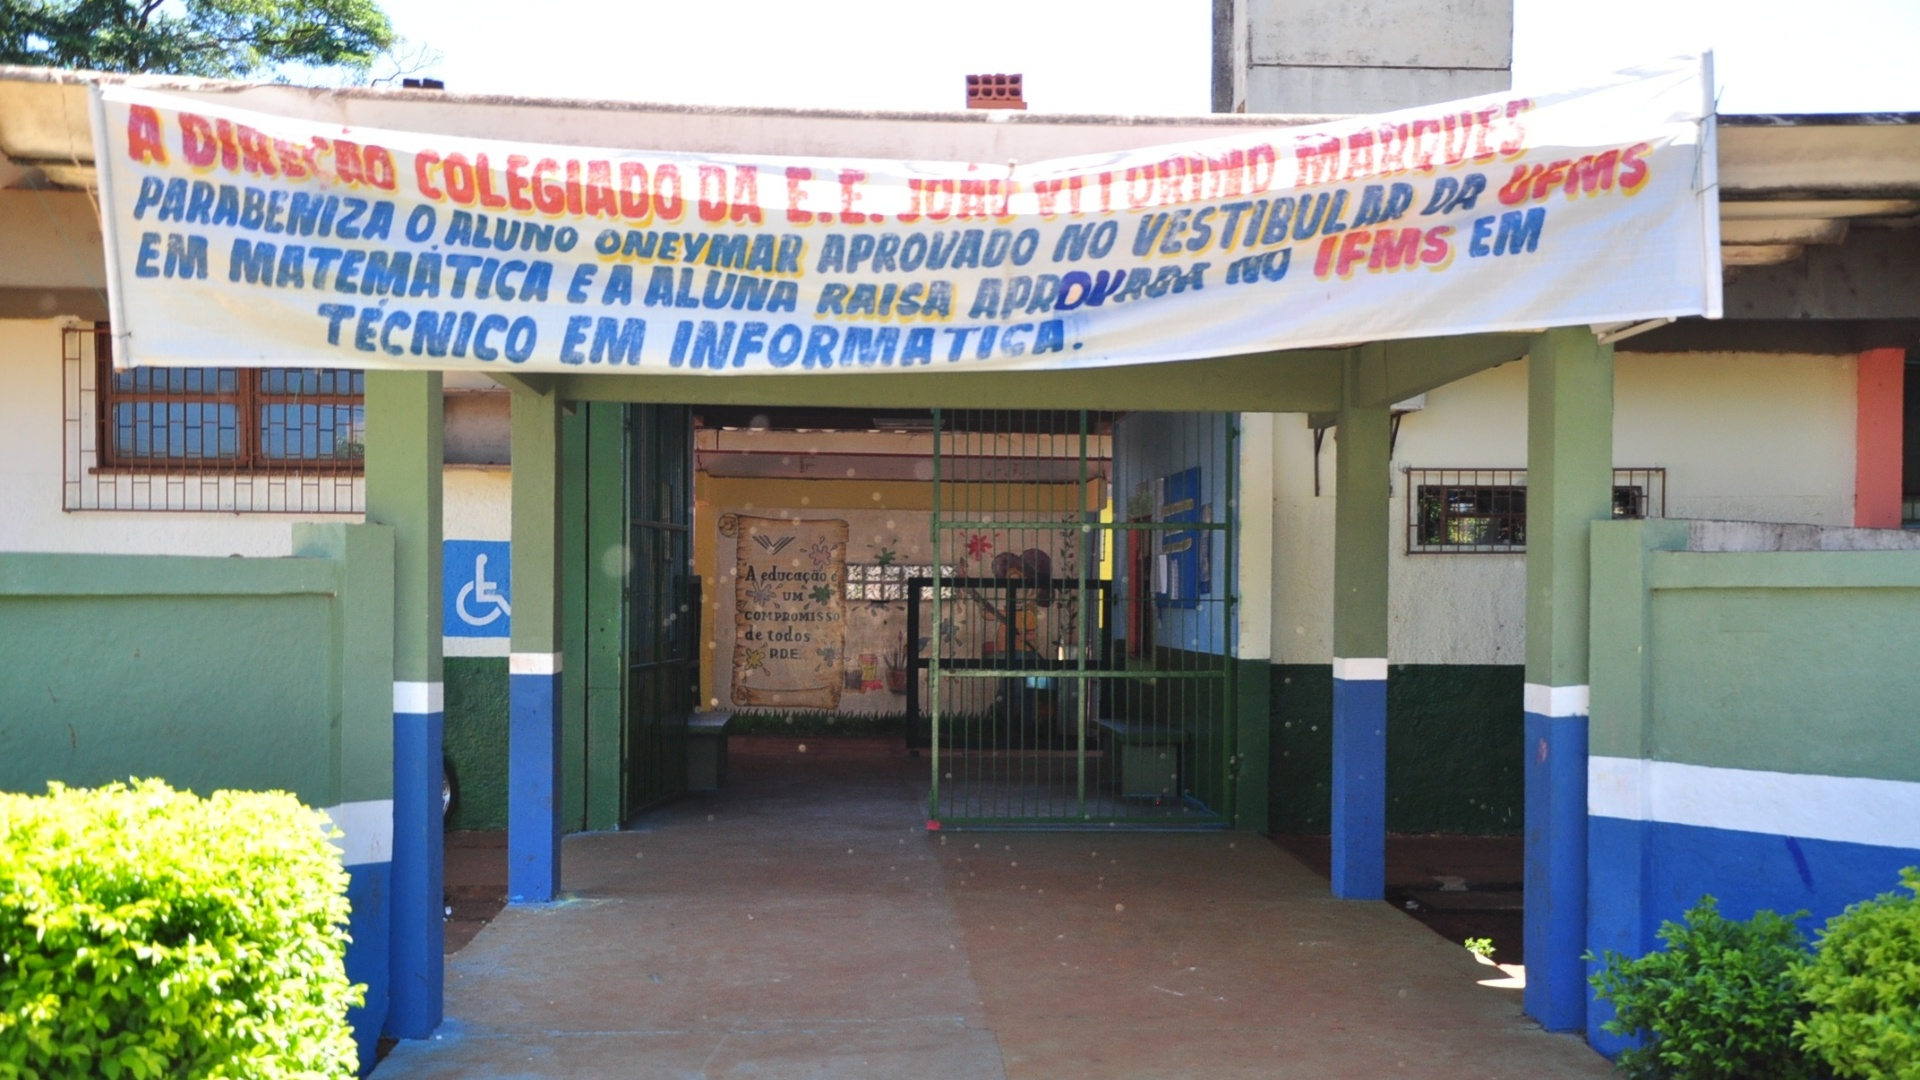 Entrada da antiga escola de Fael, Escola Estadual Joo Vitorino Marques, em Aral Moreira (30/3/12)